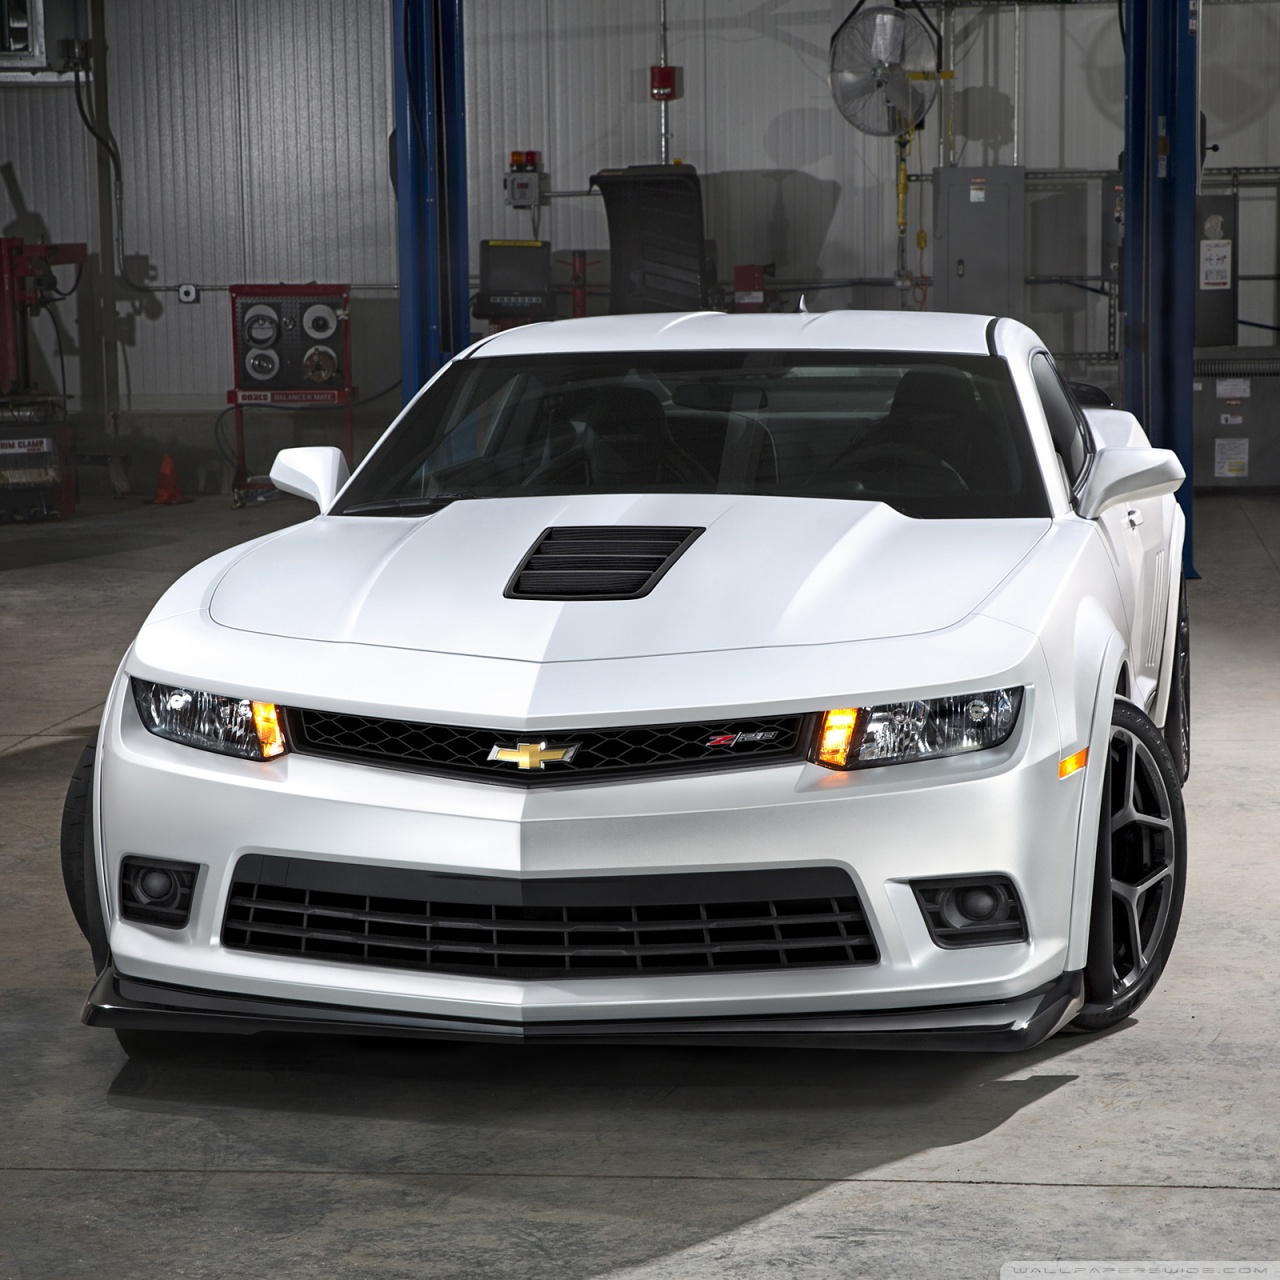 Free Download Bumblebee Camaro Concept You May Also Like The Camaro Convertible 1280x1280 For Your Desktop Mobile Tablet Explore 46 2014 Chevy Camaro Wallpapers Camaro Ss Wallpaper 2016 Chevy